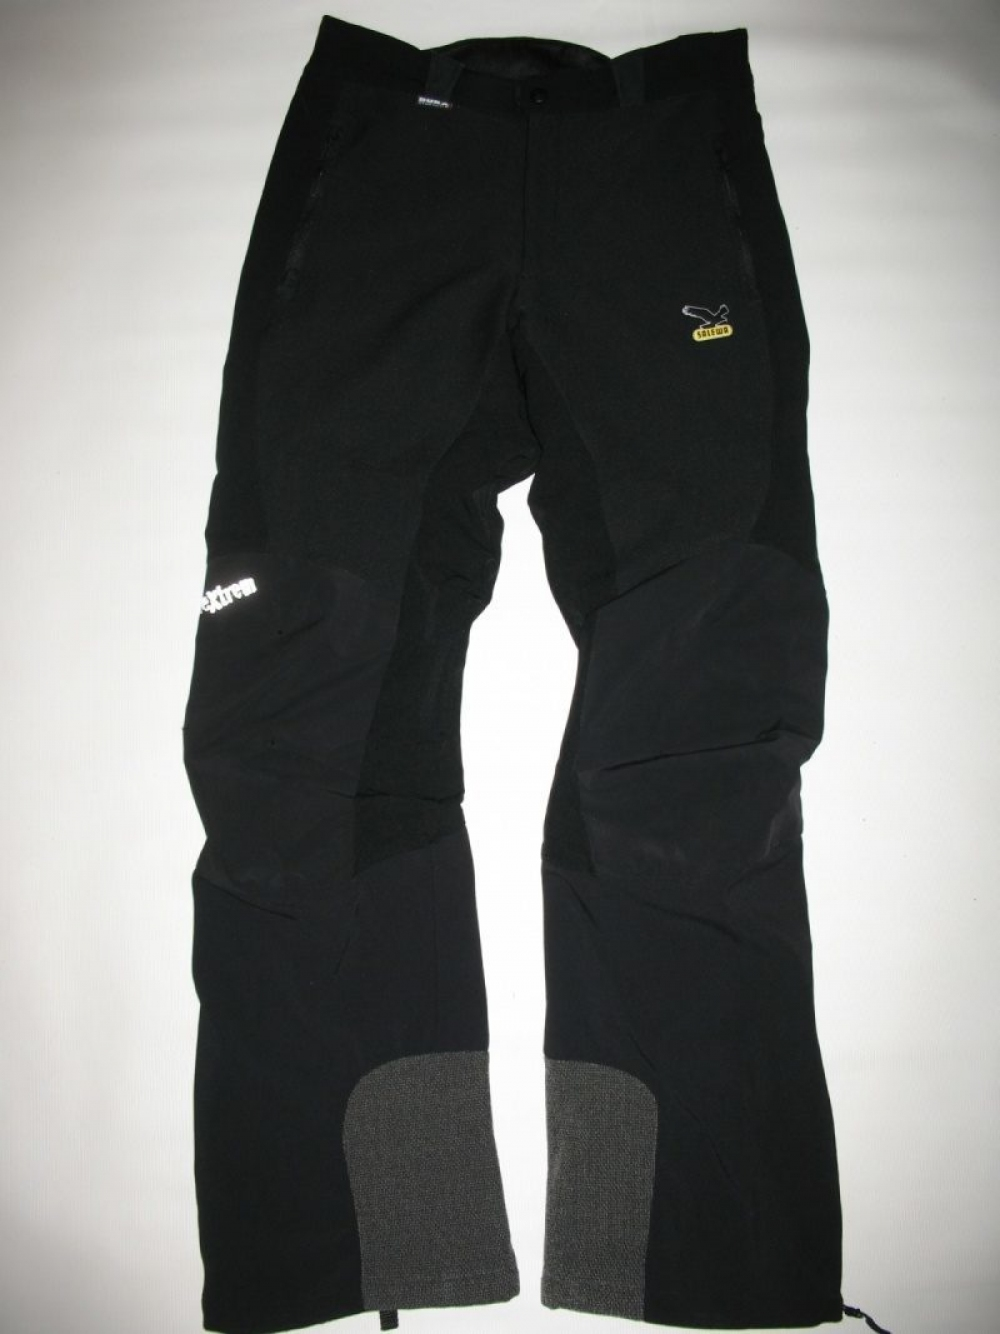 Штаны SALEWA Tower DST M Pant   (размер M) - 17319